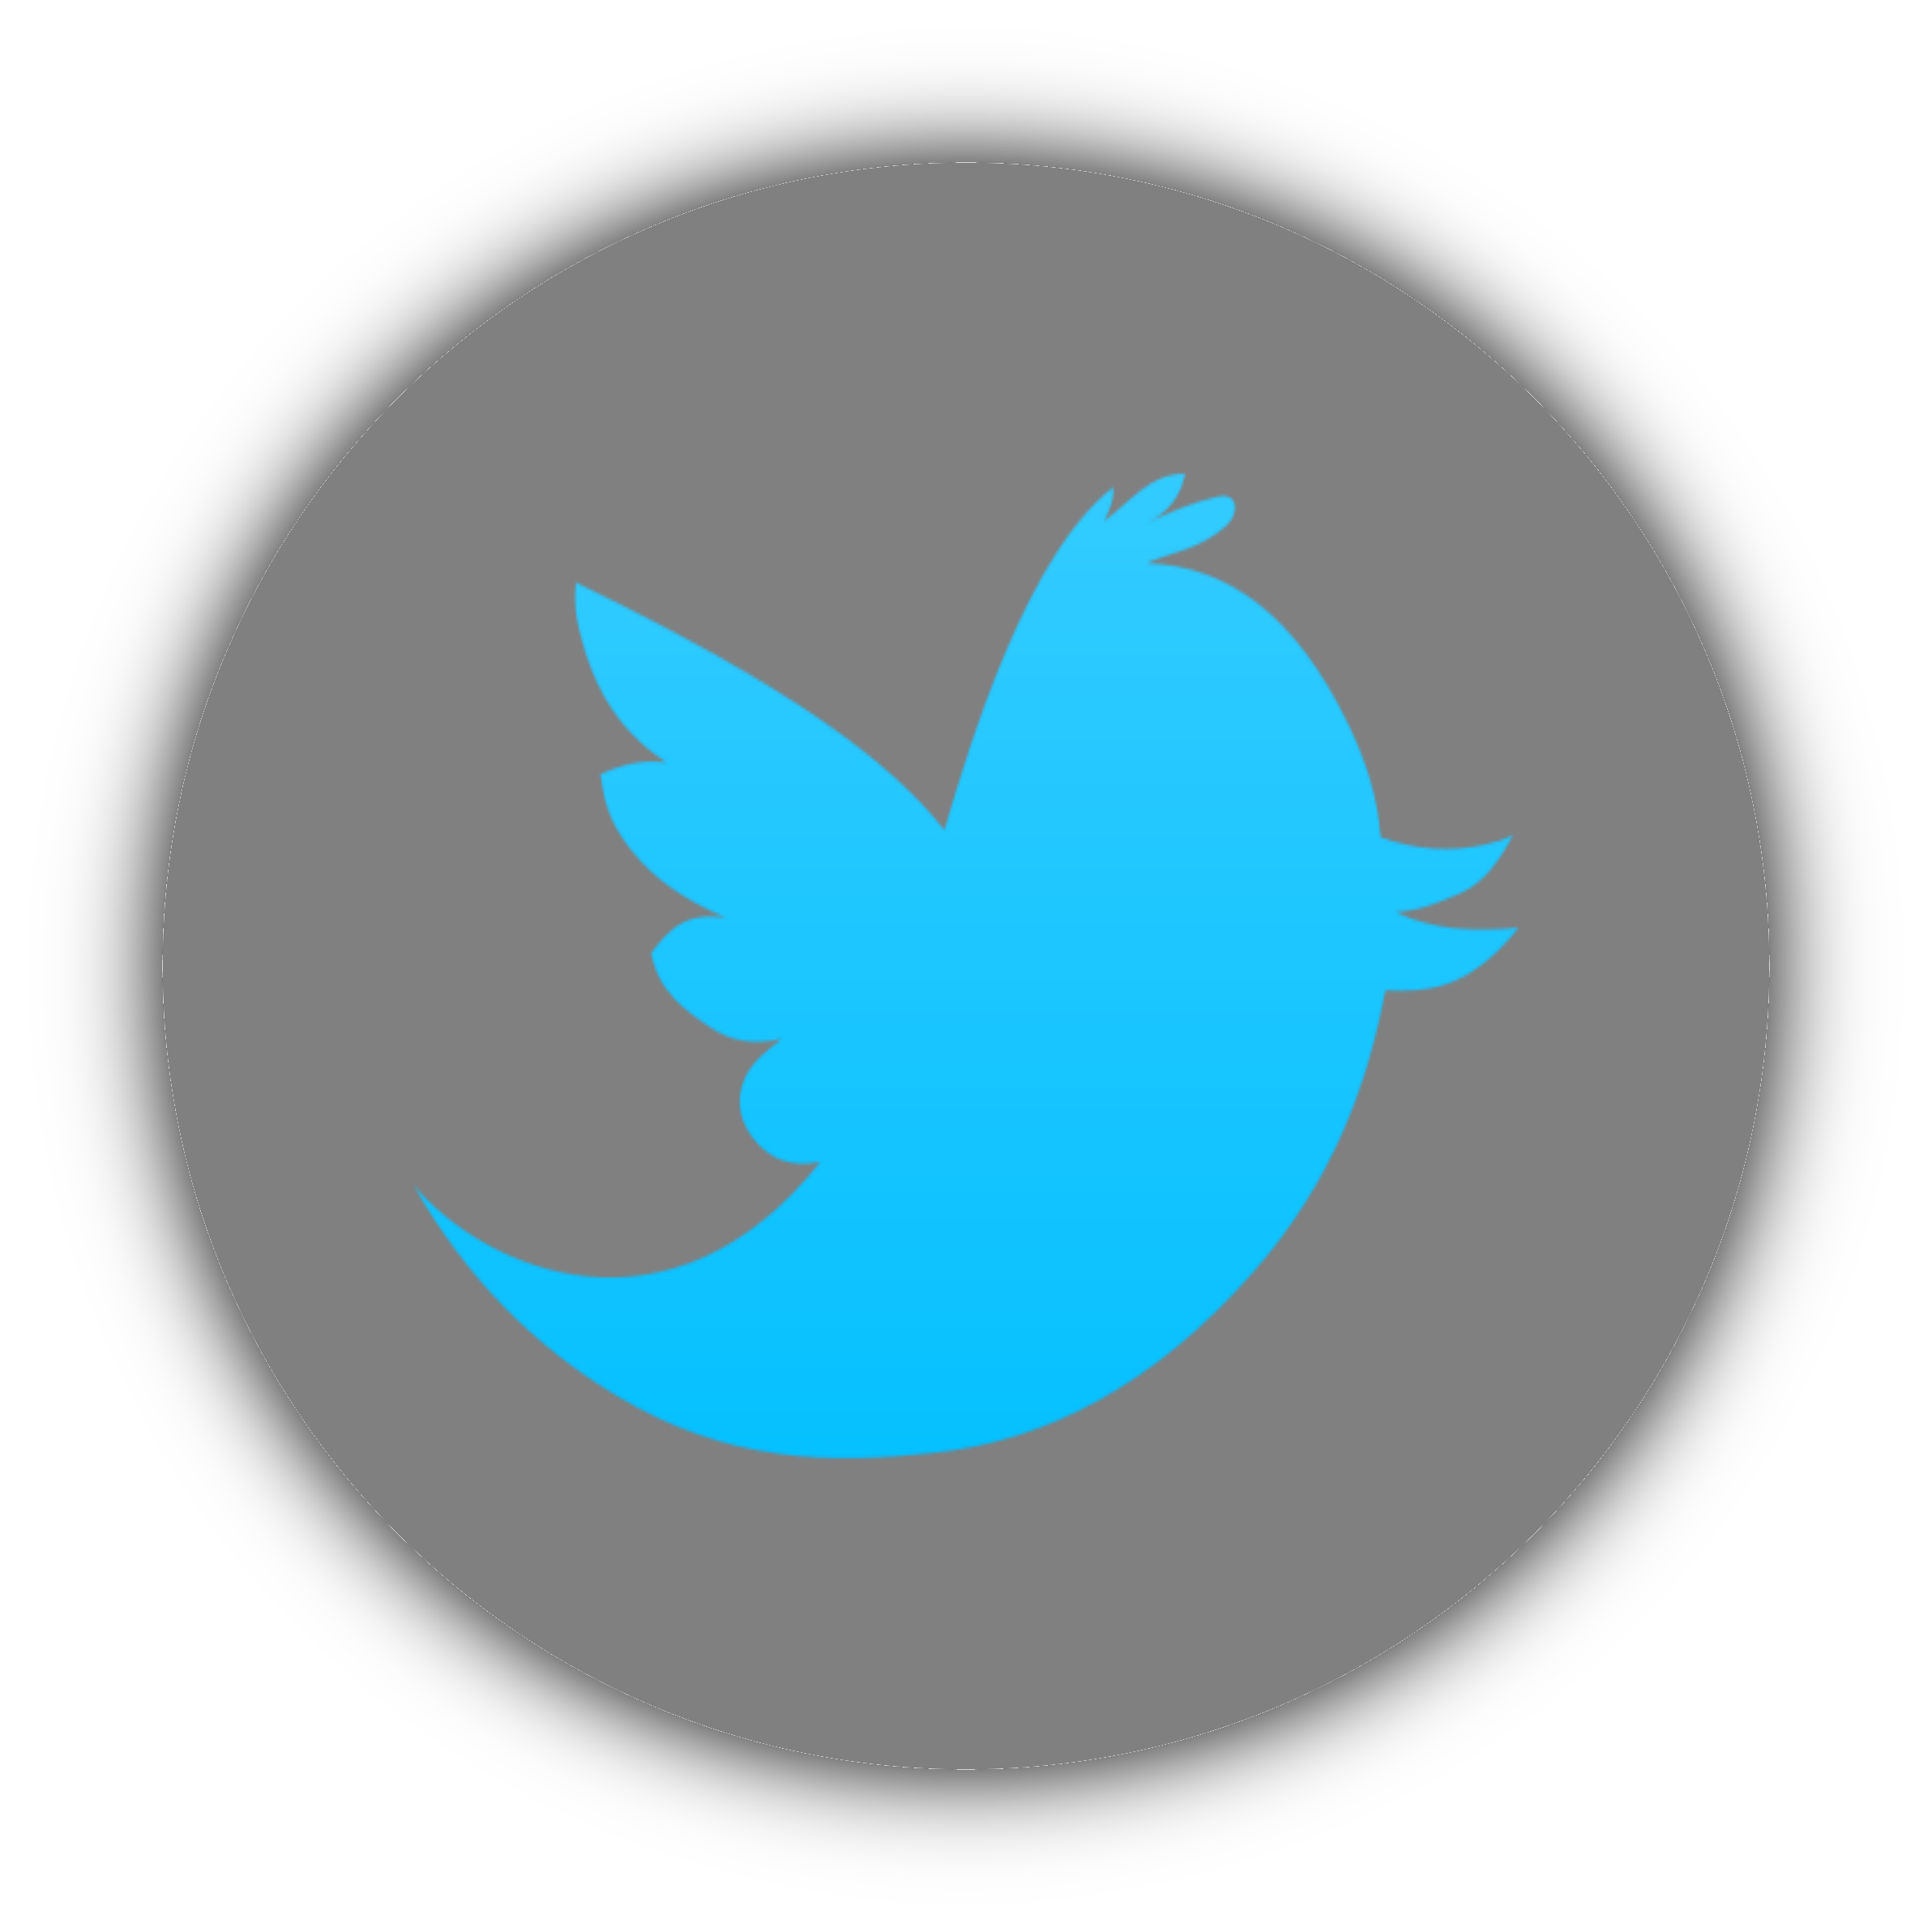 Black twitter icon png. Image call of duty